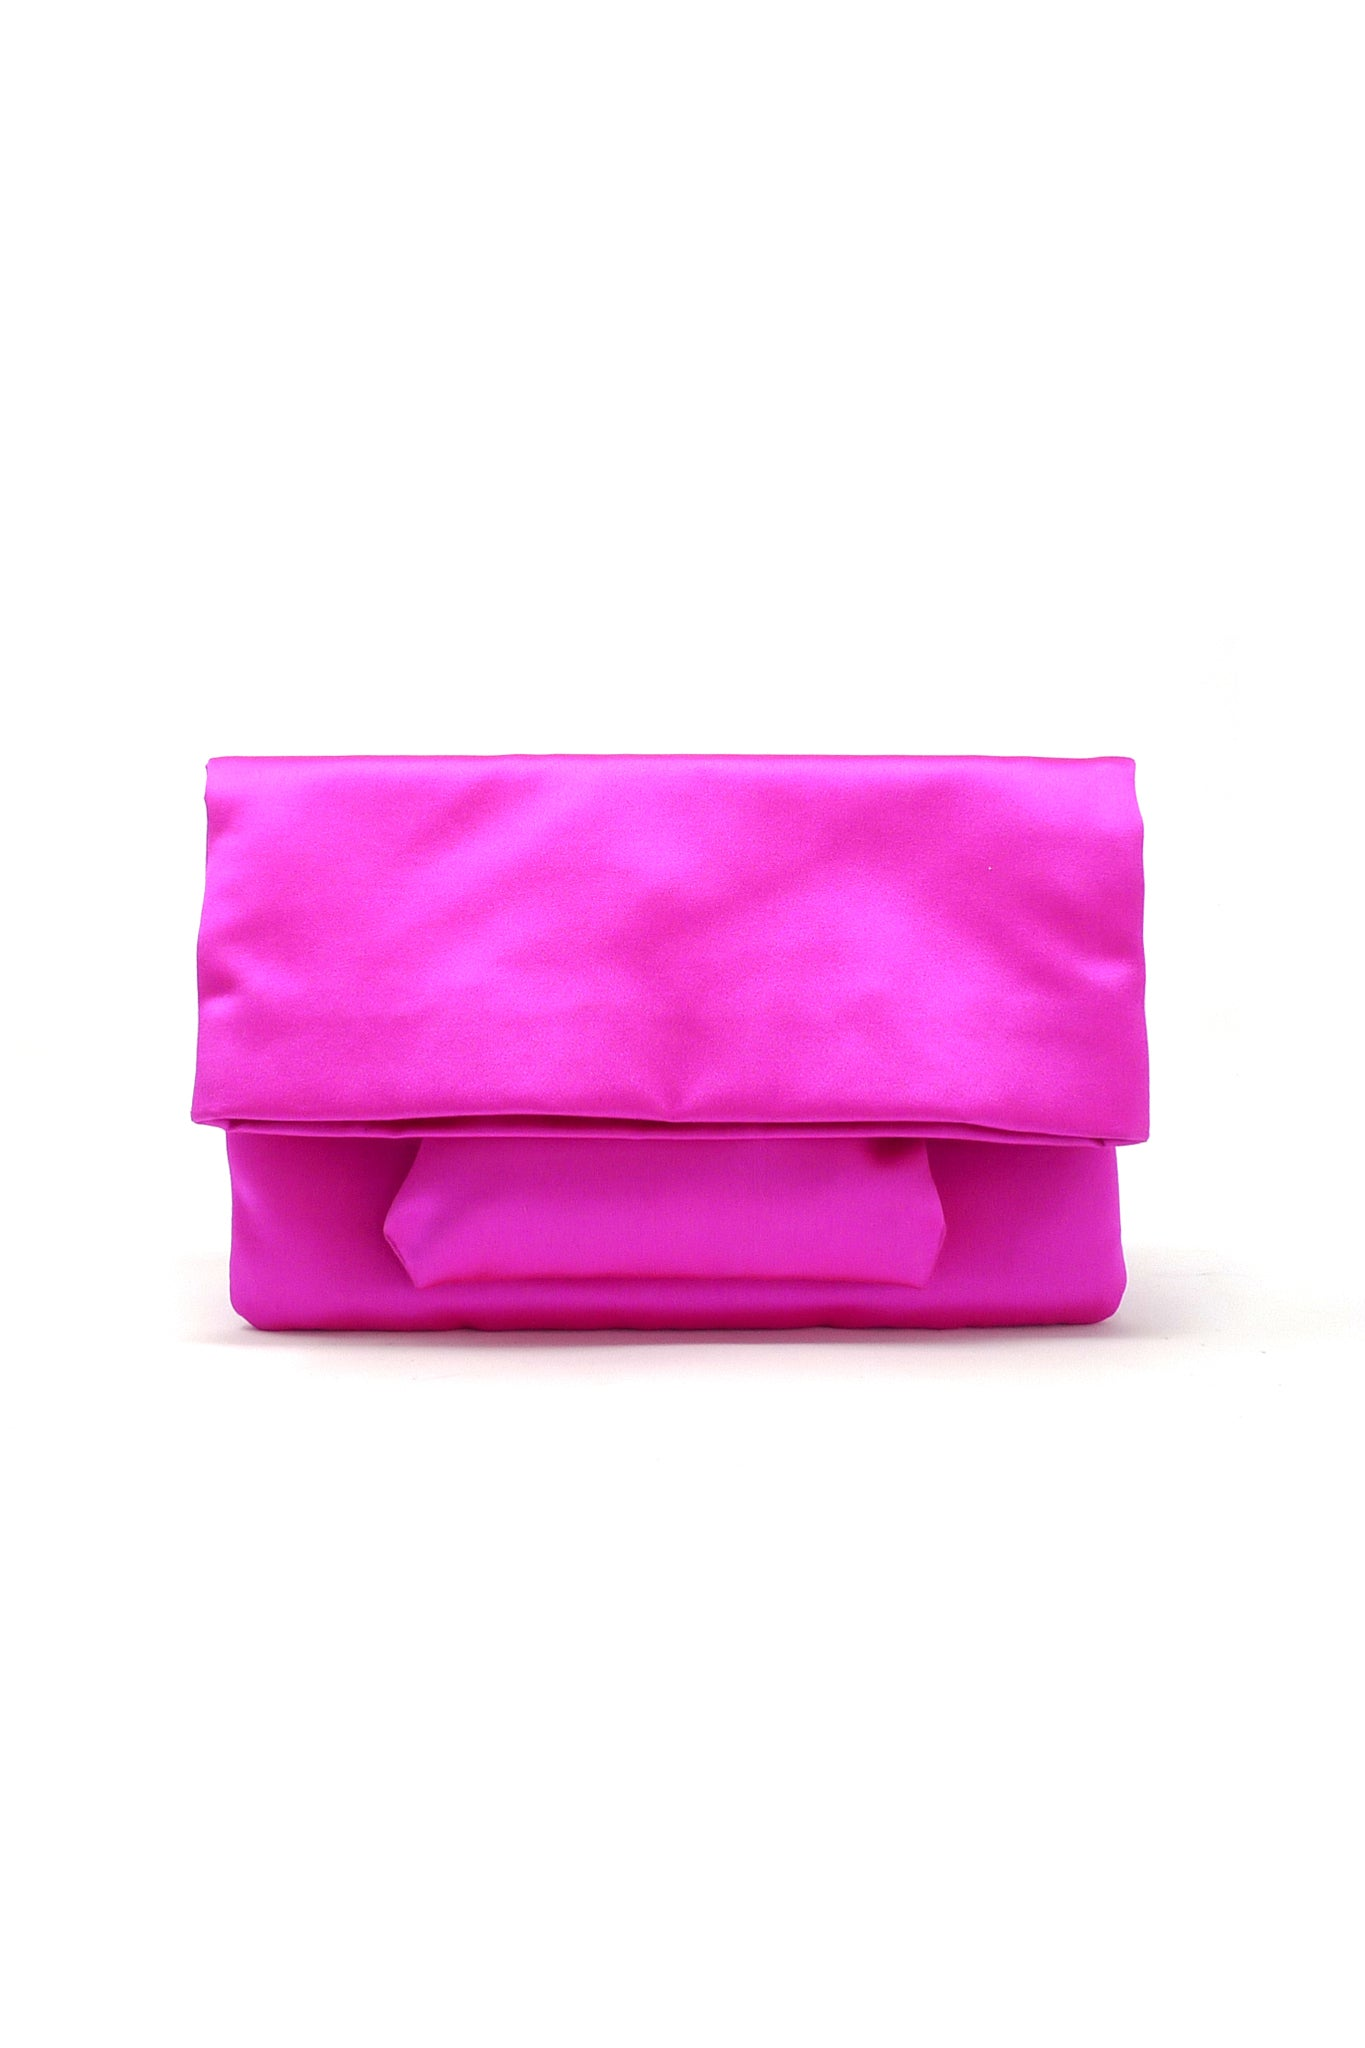 Aperitivo Clutch in Fuchsia Satin